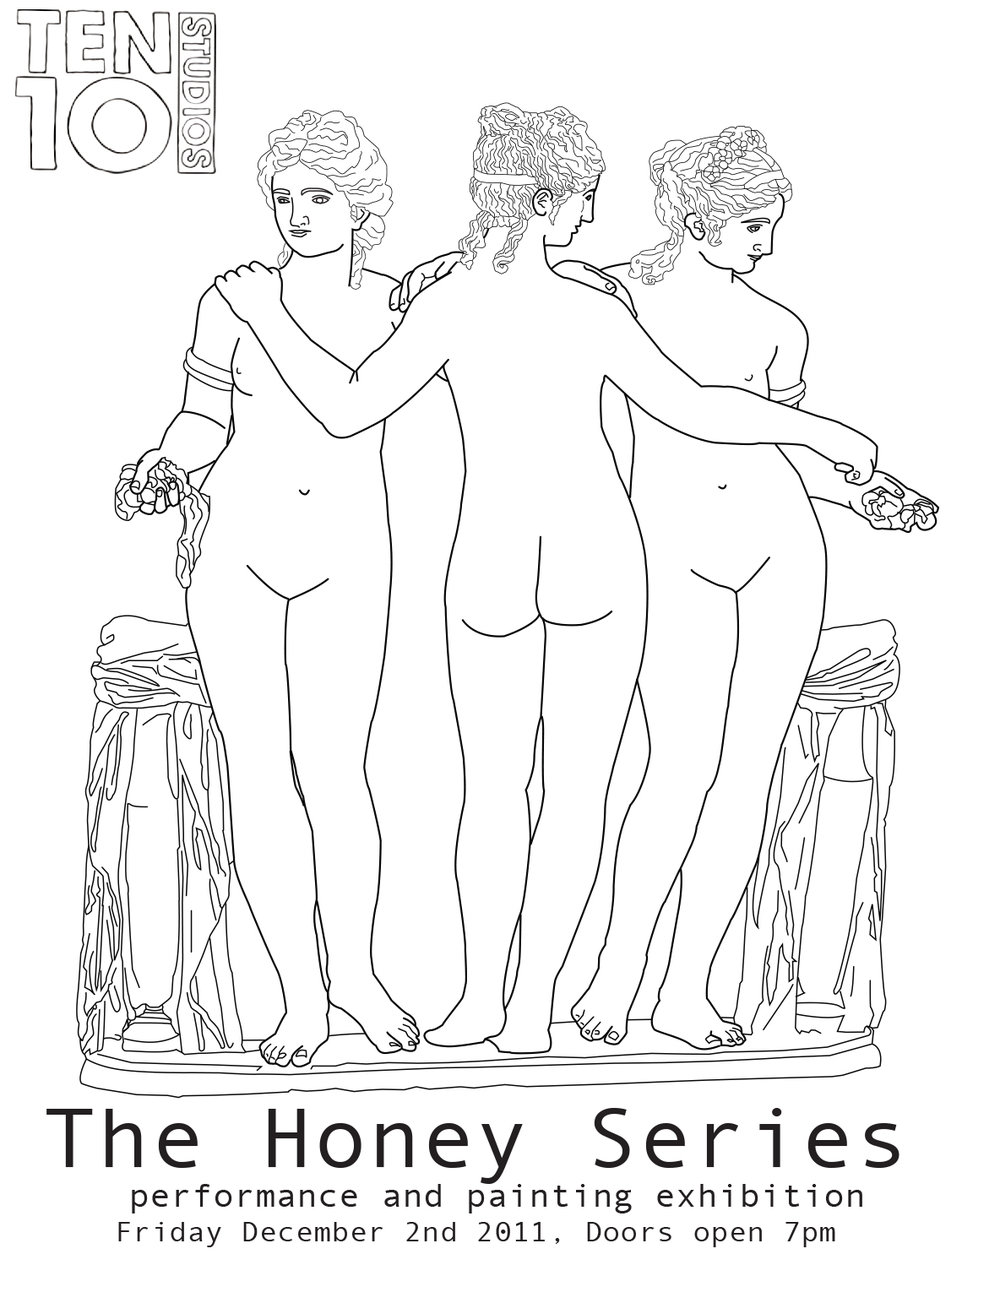 The Honey Series